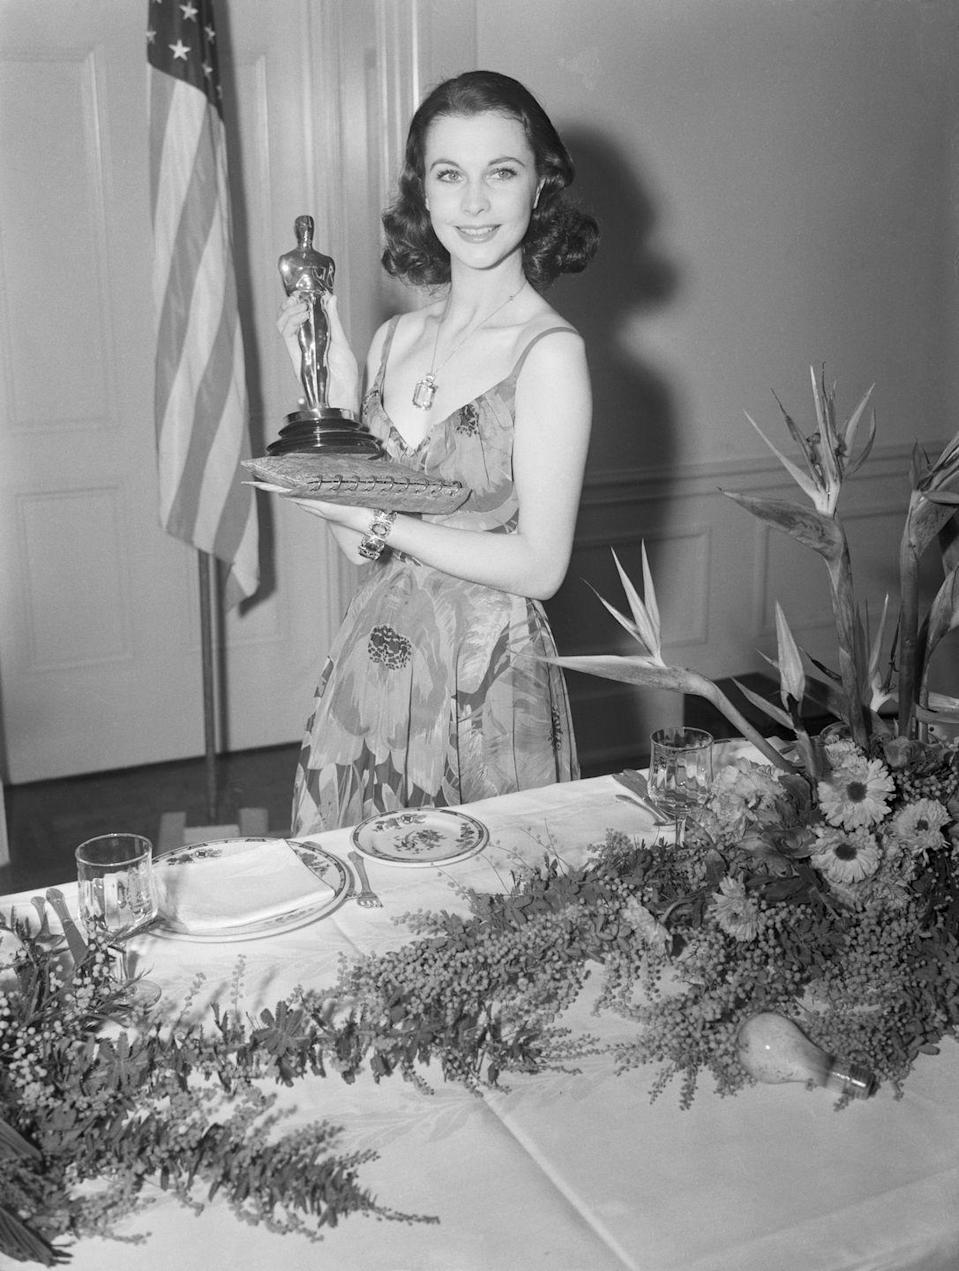 <p>The British actress wore a spaghetti-strap floral-printed number and accessorized with a long pendant necklace at the 1940 Oscars. She accepted her award for her iconic performance in <em>Gone With the Wind</em>. (Scarlett O'Hara's curtain dress is shaking.)</p>